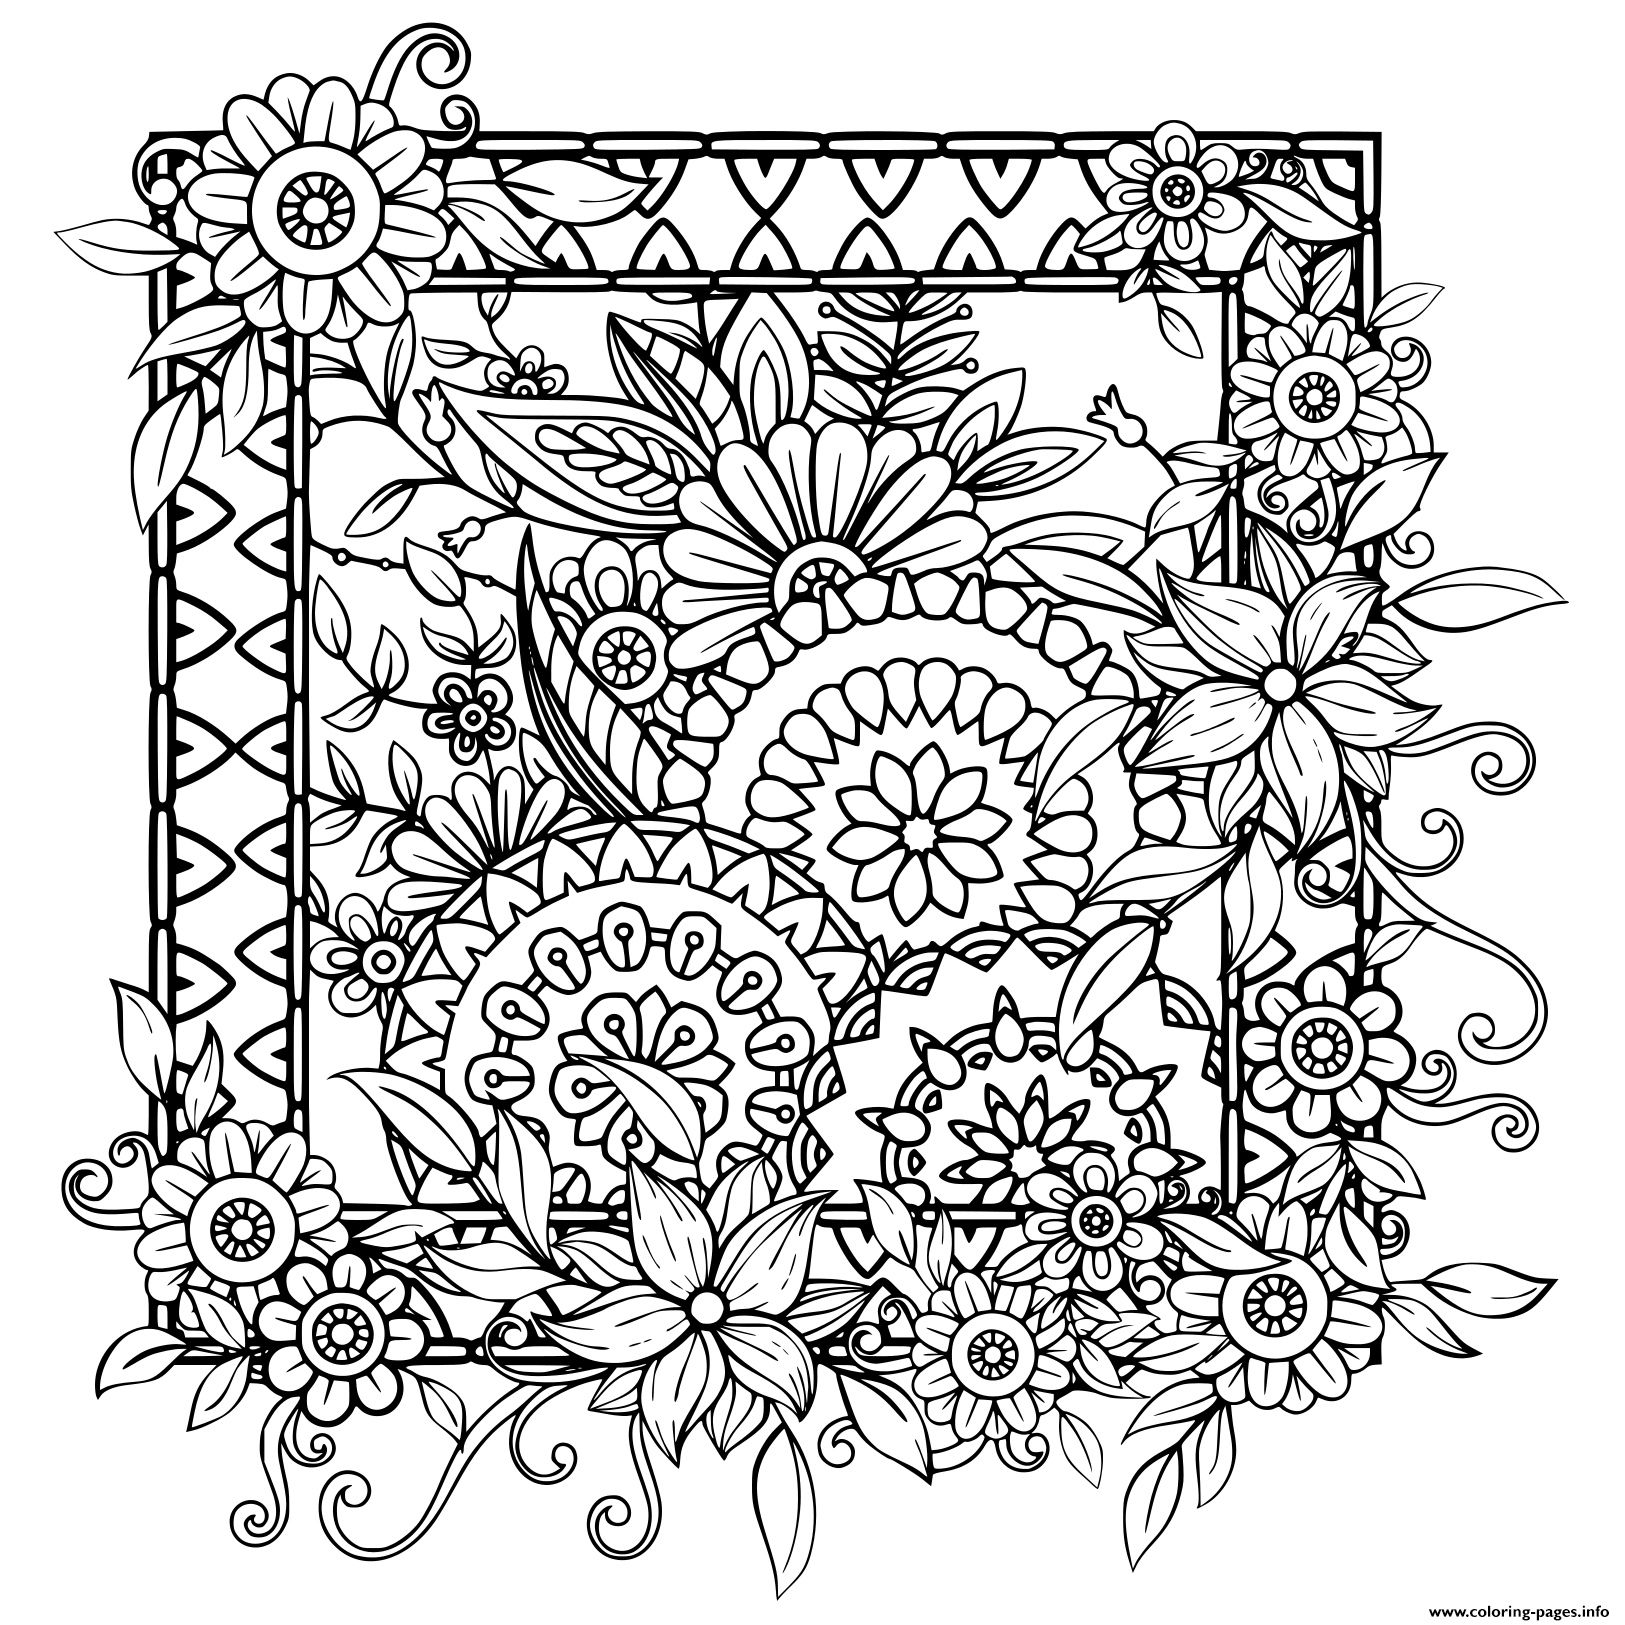 flower coloring patterns flowers paisley design coloring pages hellokidscom coloring flower patterns